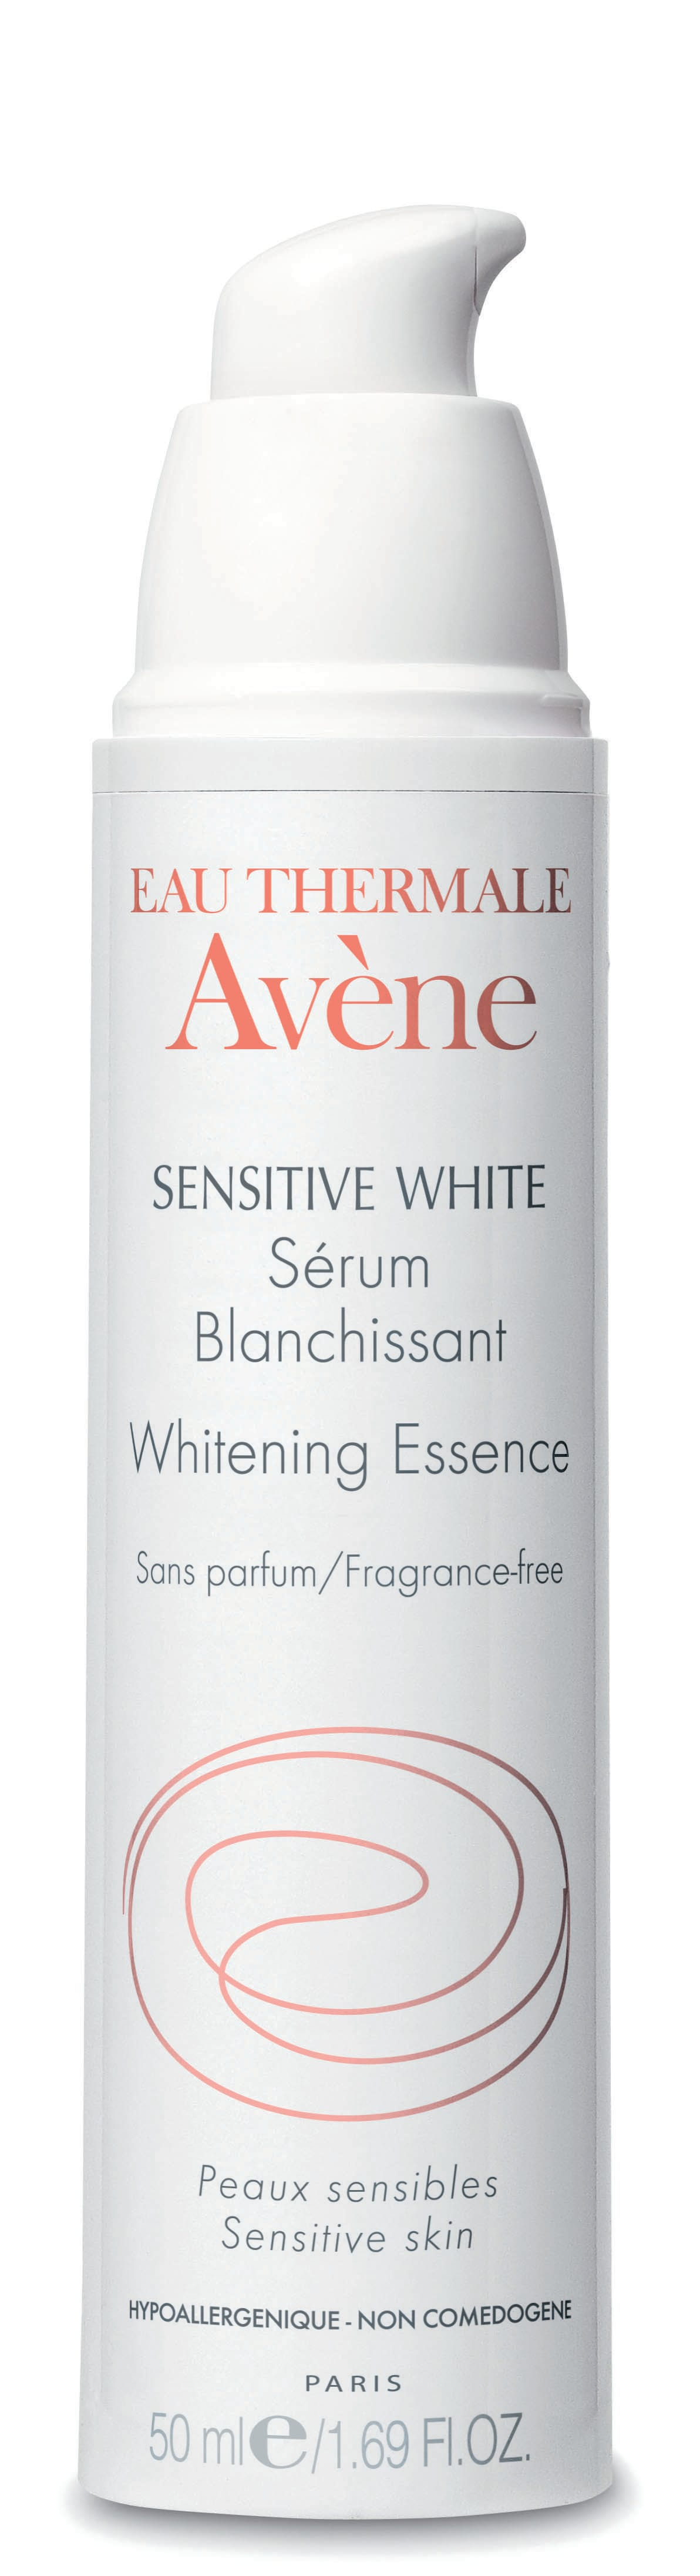 Avene Sensitive White Essence Serum